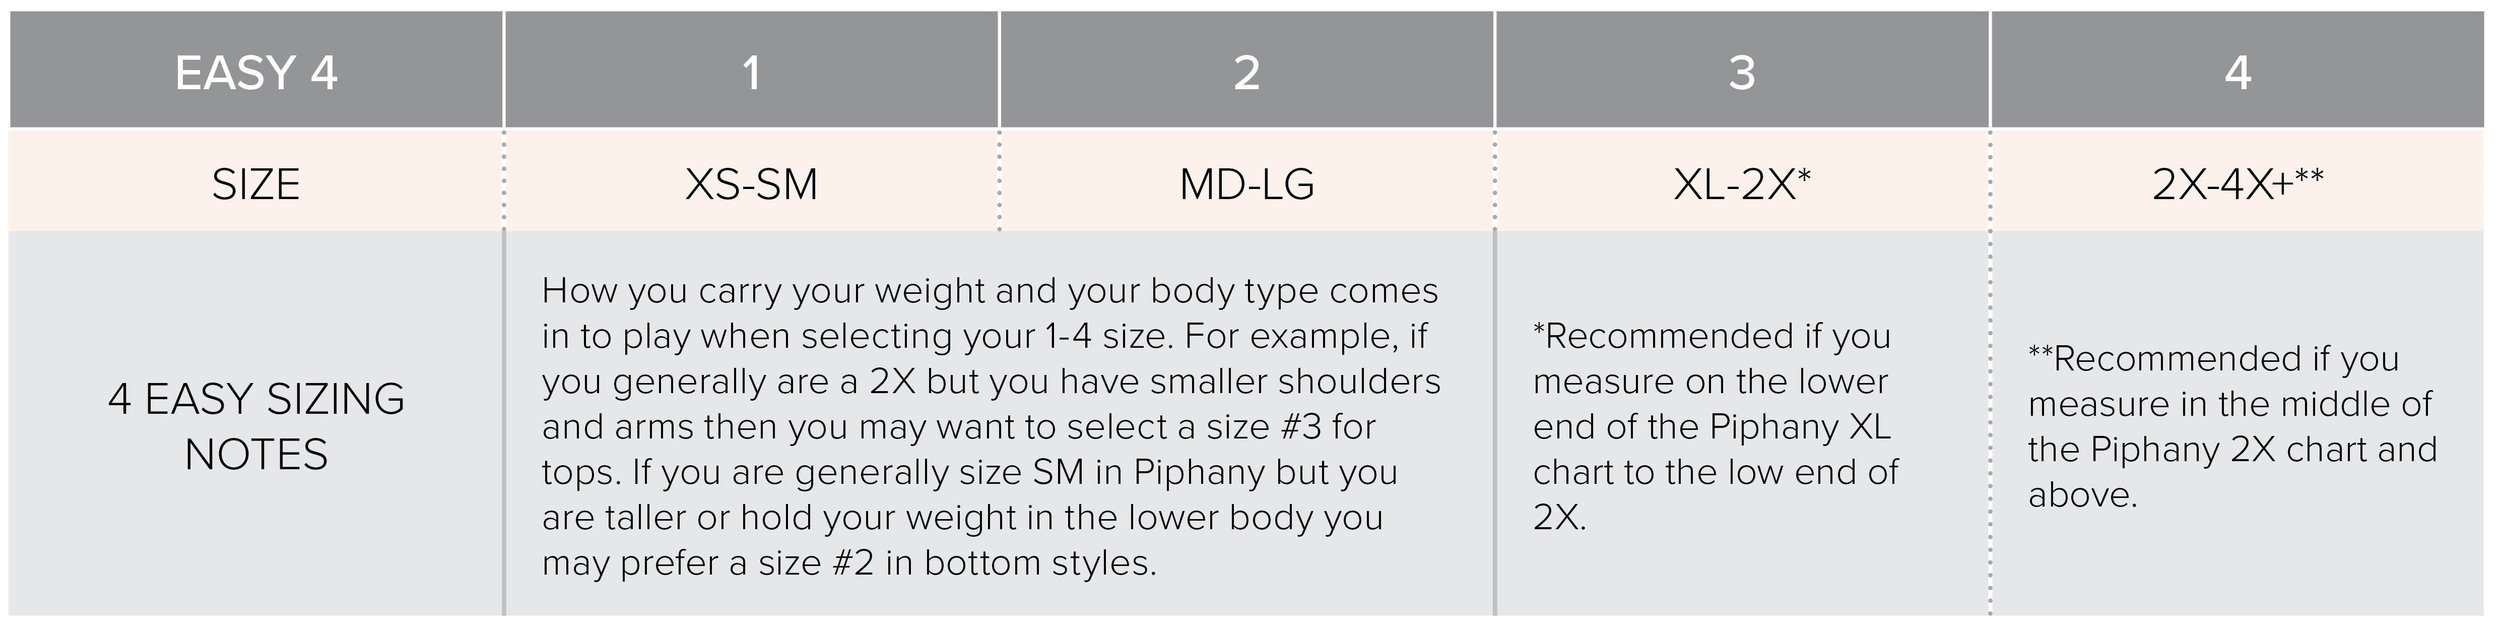 PIPH_SIZE CHARTS_EASY4.jpg